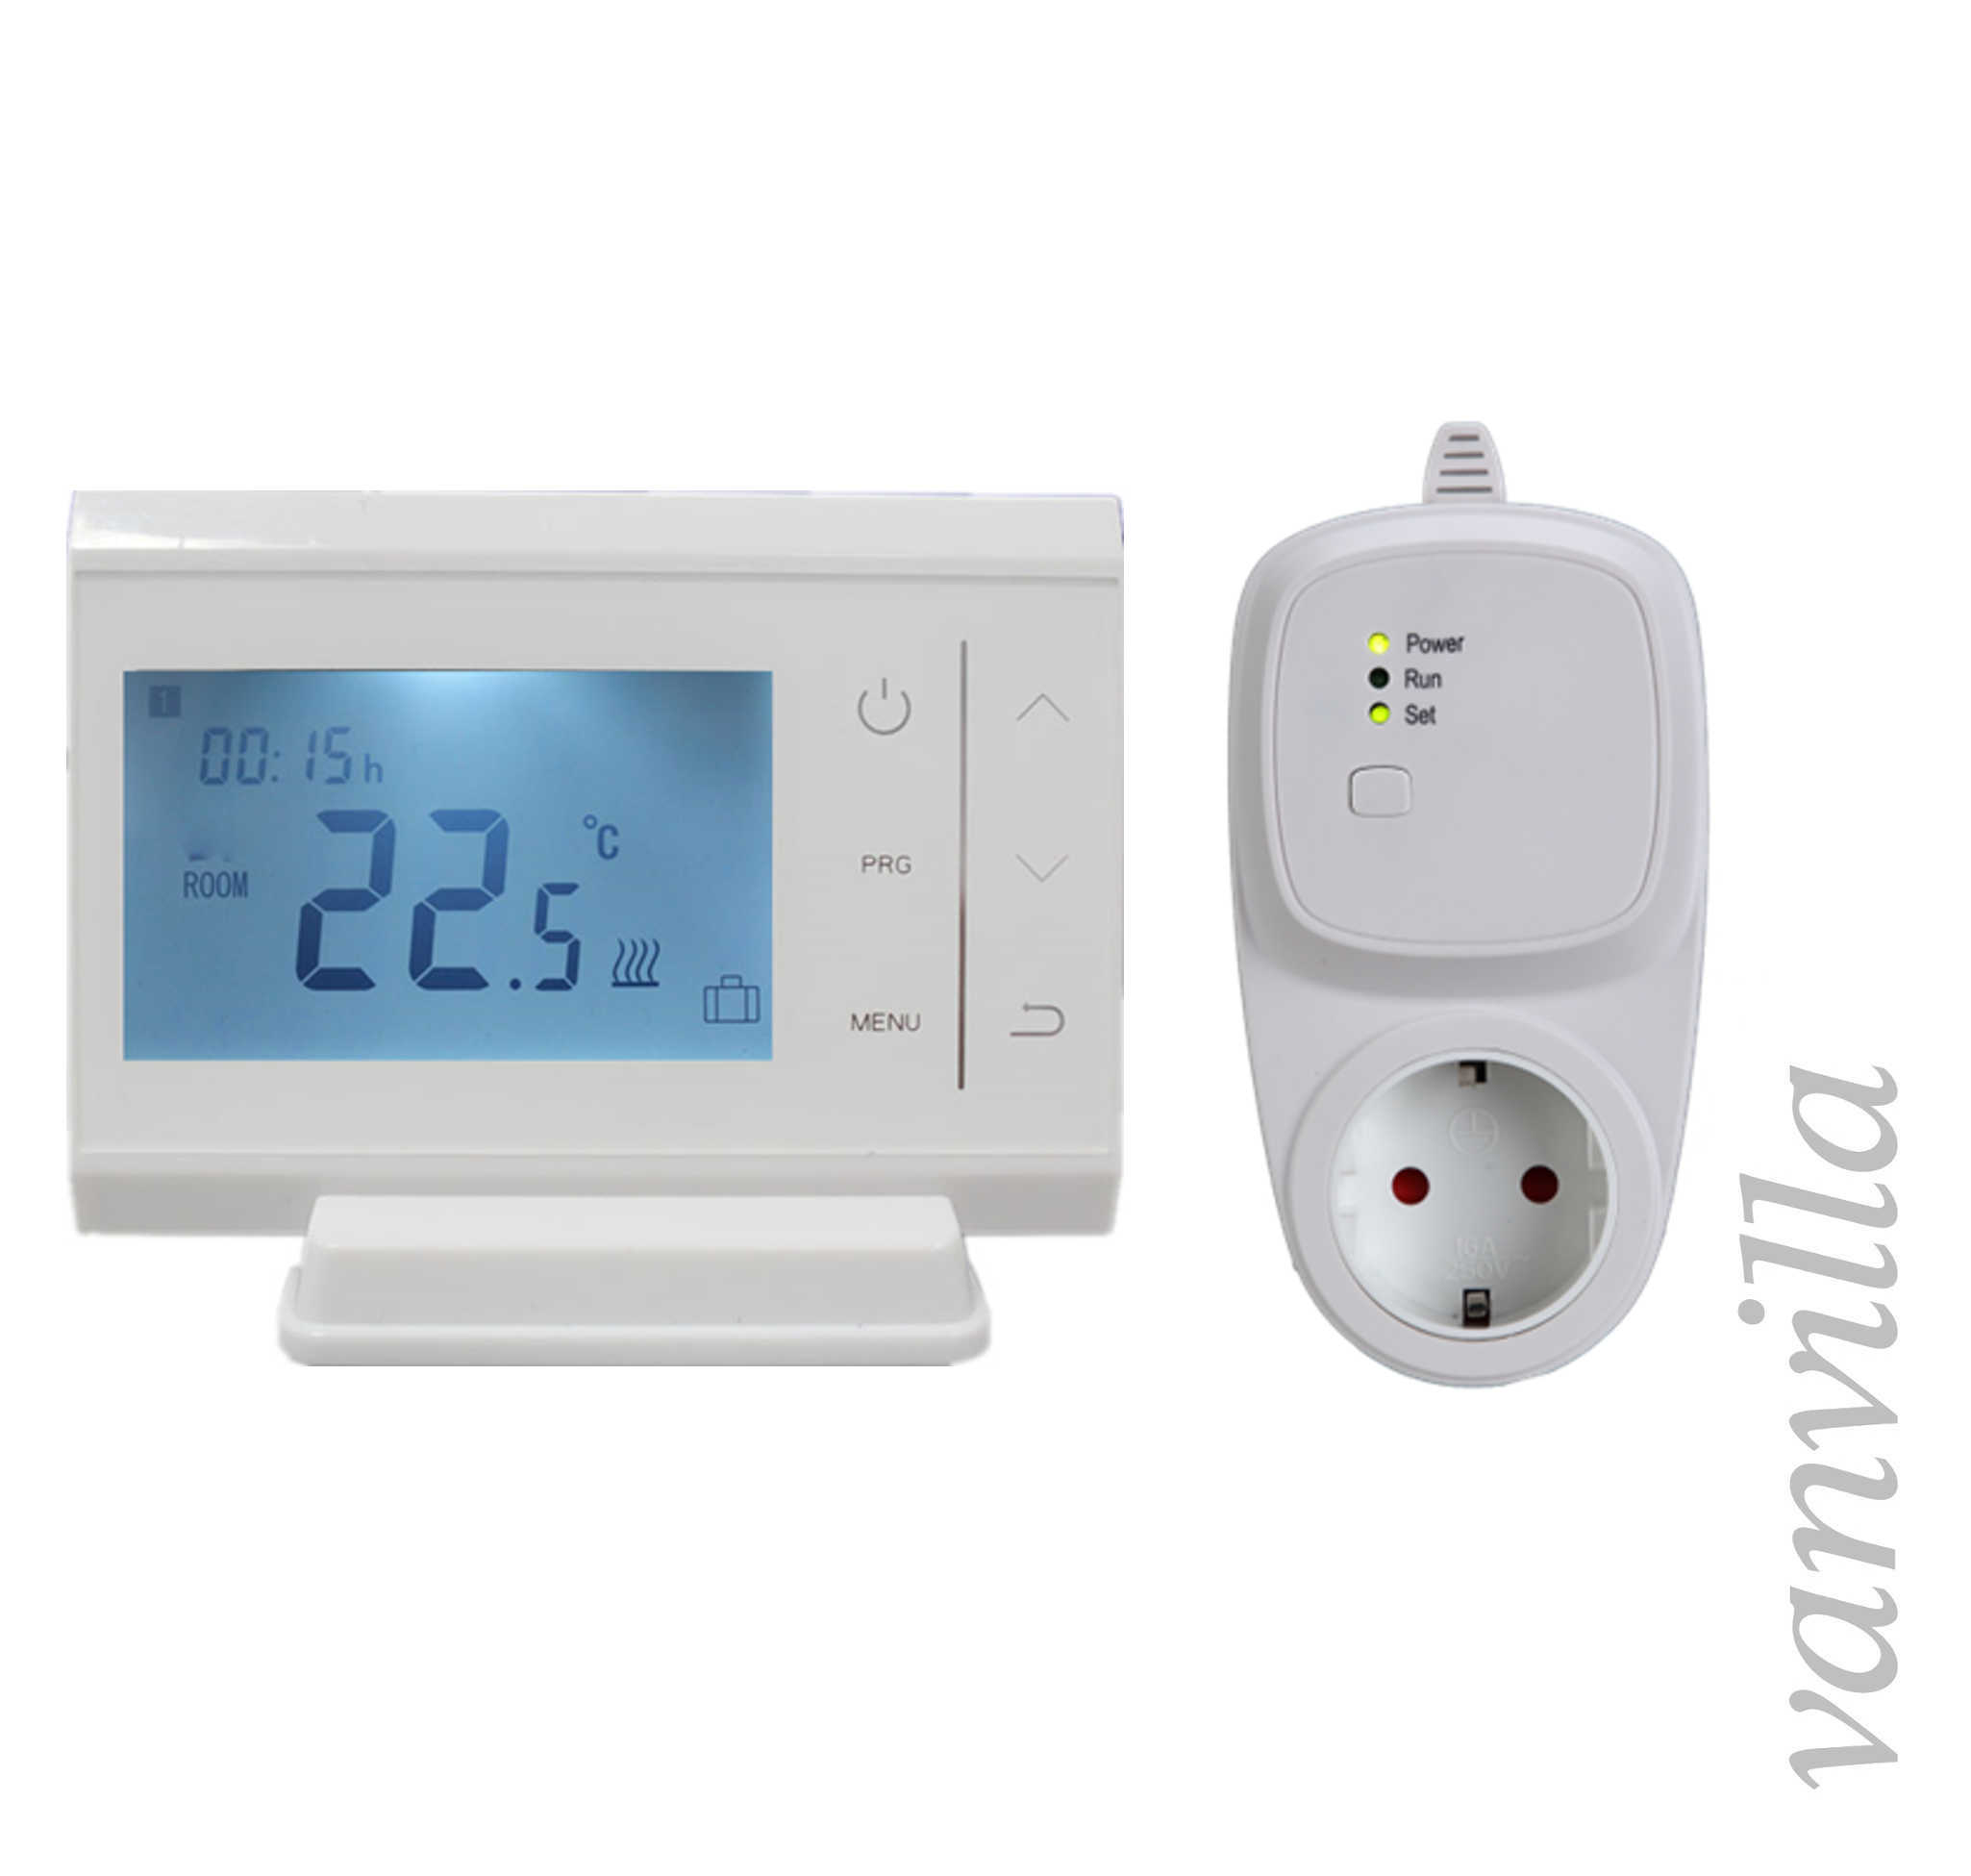 vanvilla digital funk raumthermostat thermostat programmierbar funksteckdose set ebay. Black Bedroom Furniture Sets. Home Design Ideas